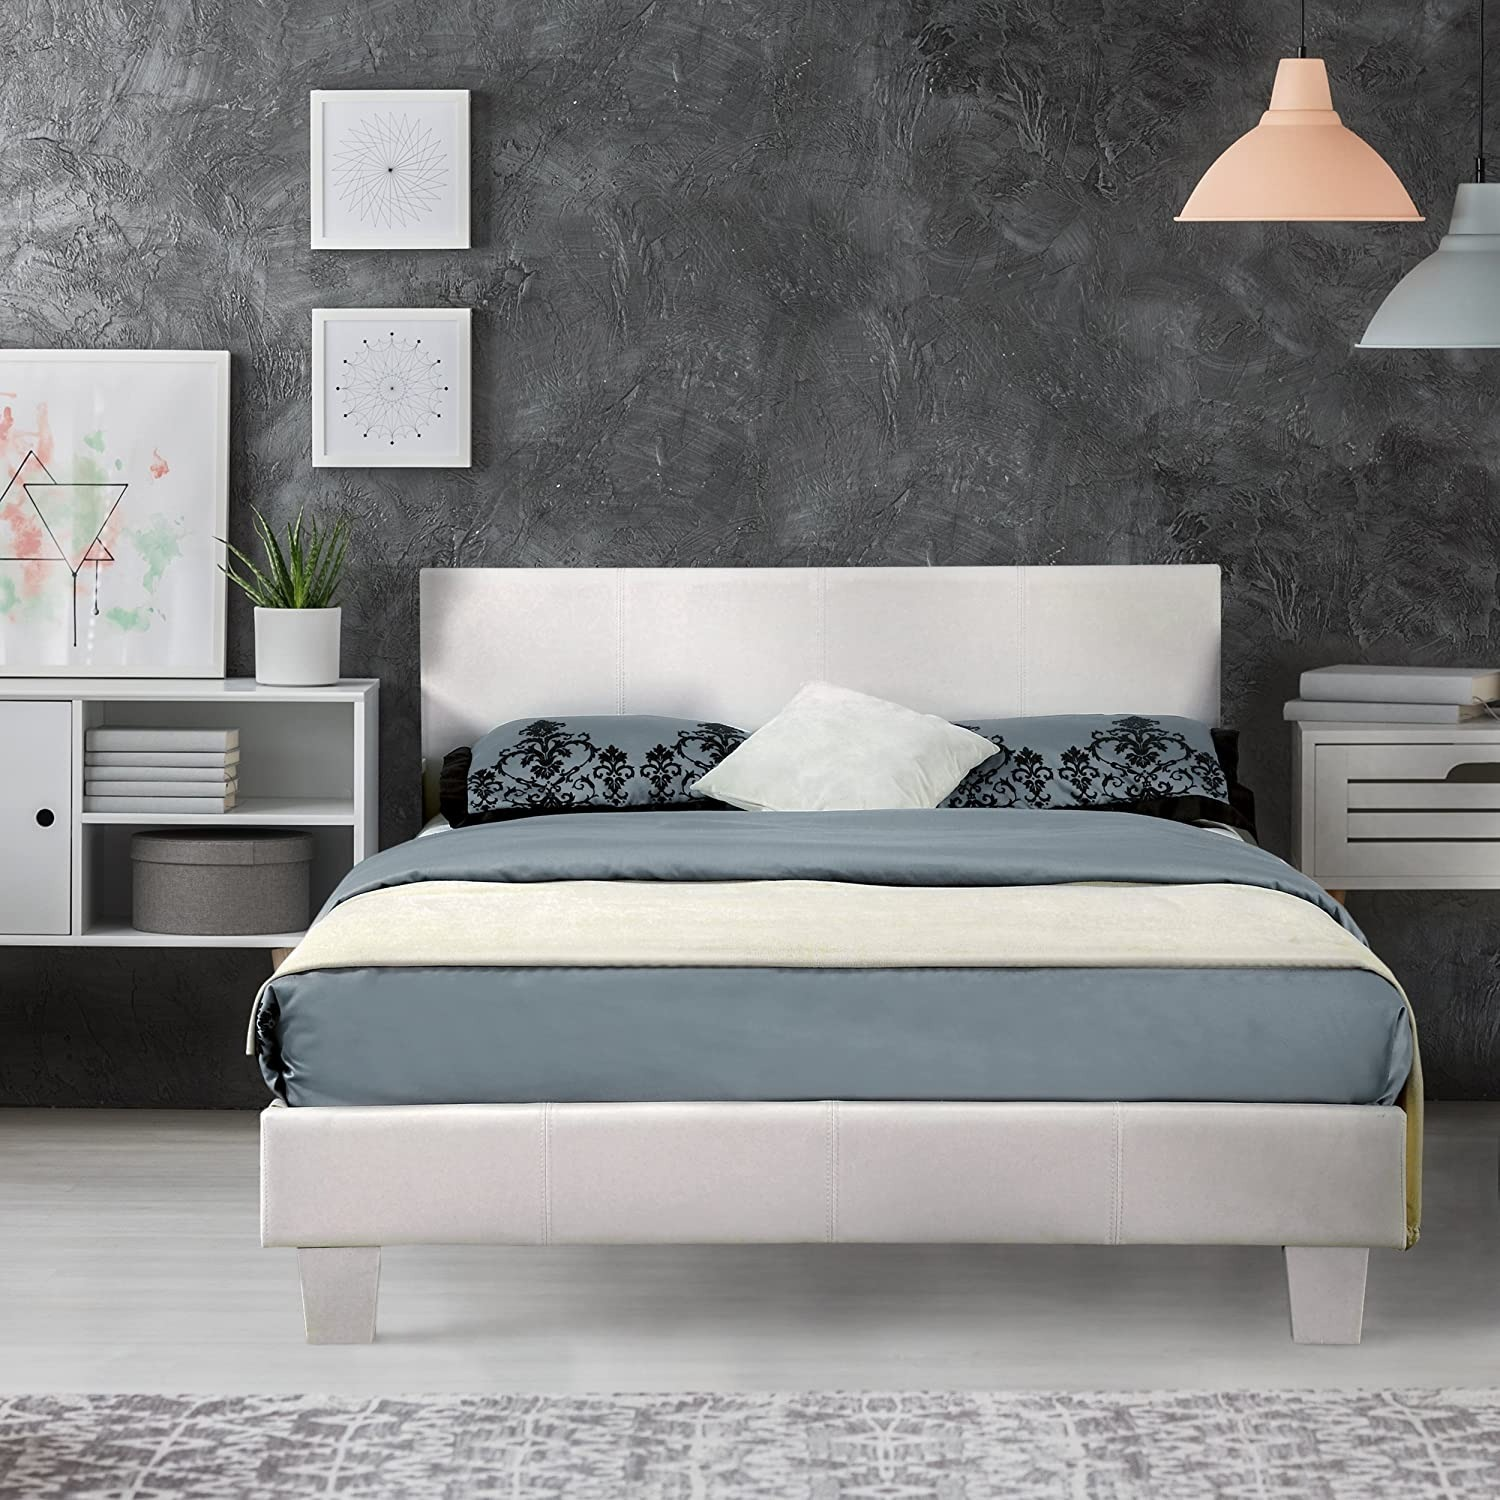 White Queen Size Headboard - image-3